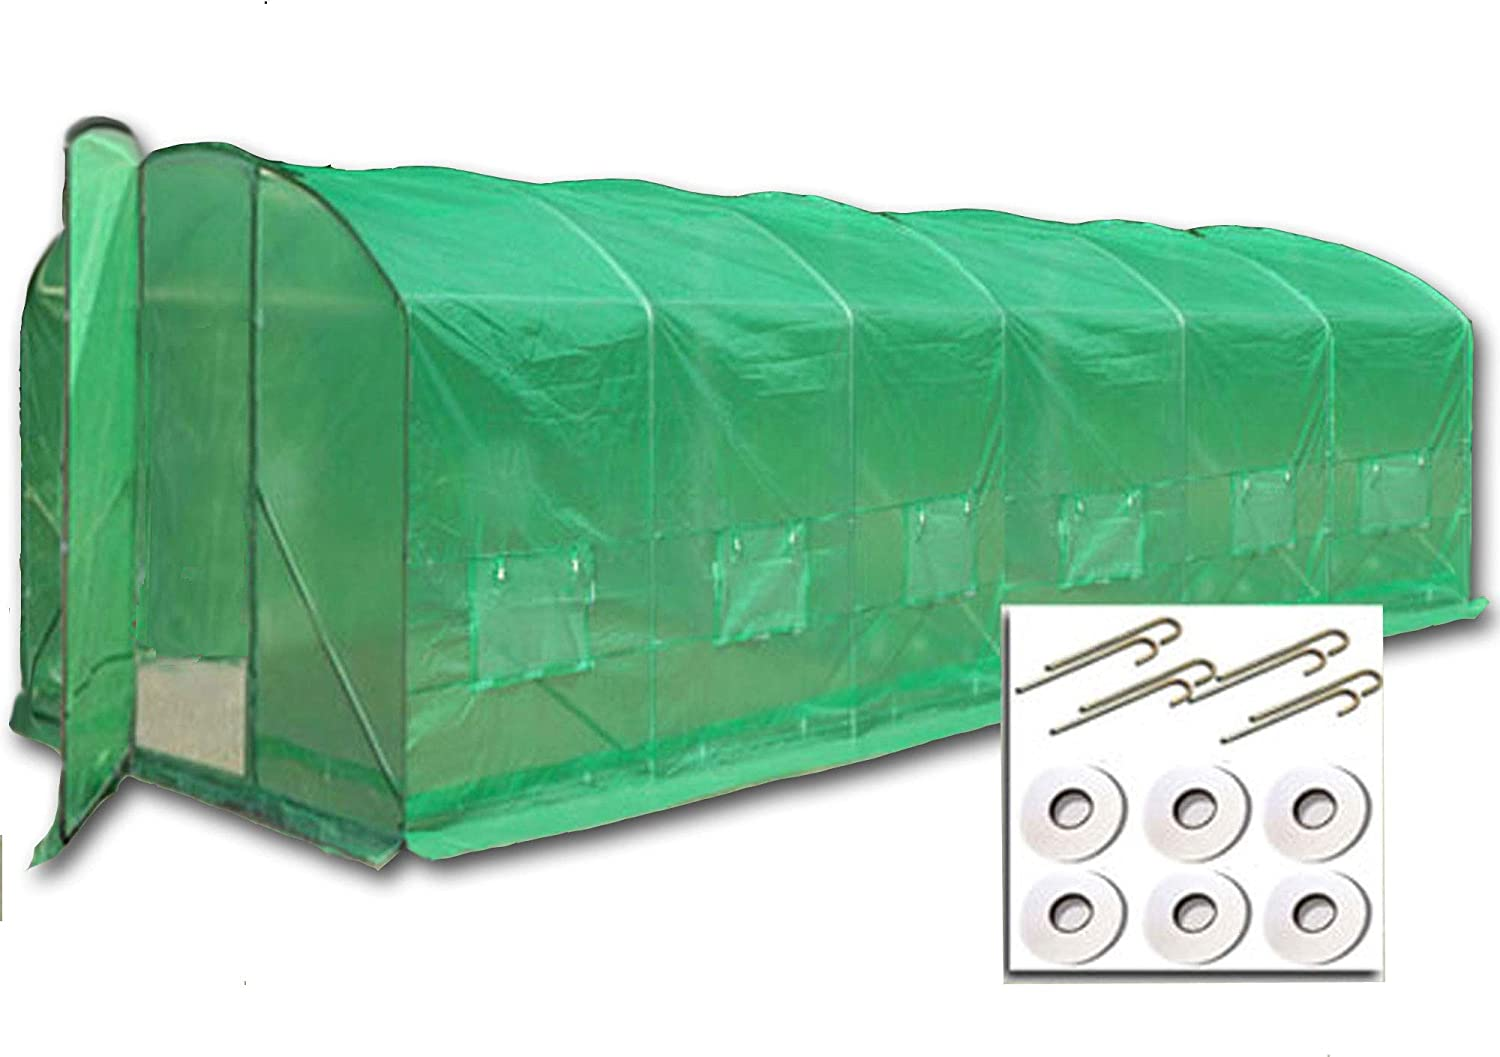 Crocodile Trading 8m x 3.5m + Anchorage Kit Extreme, High Side Extra Wide Polytunnels for the more serious grower. 32mm Frame, Full Height Bracing, Front & Rear Access.